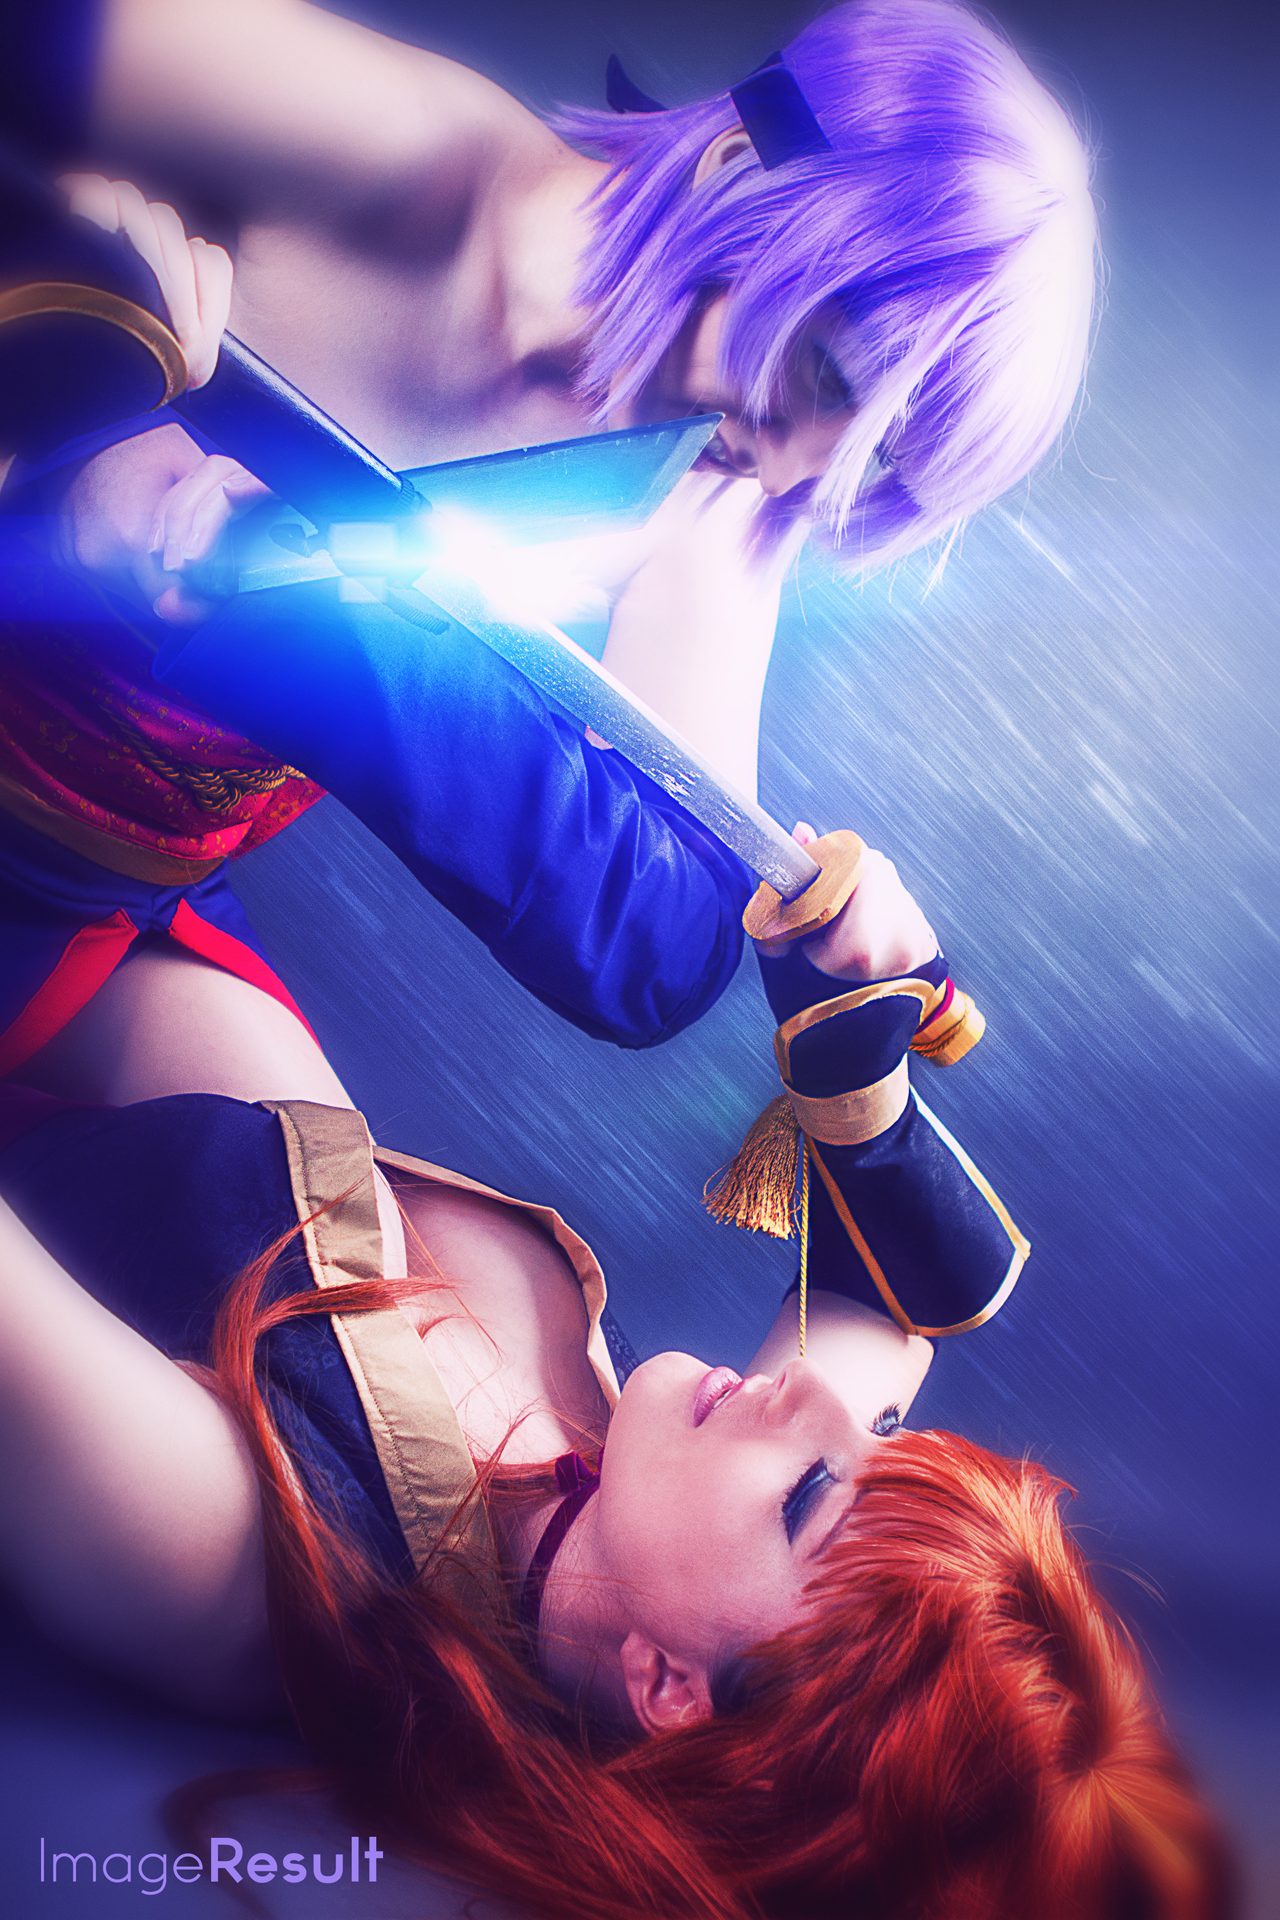 DoA Cosplay by Bunny_doll & Dezembi